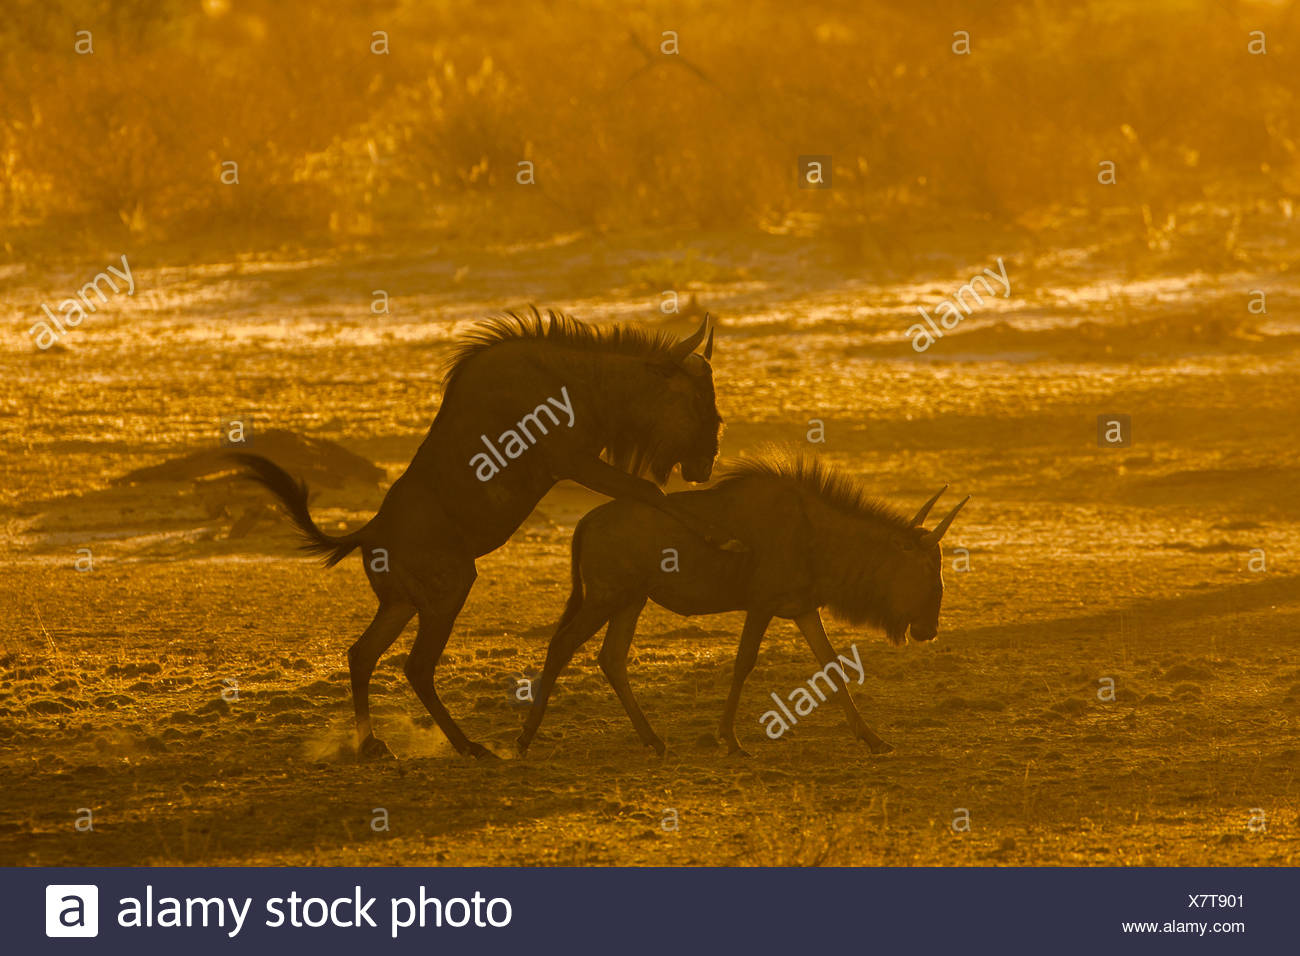 Blue wildebeest (Connochaetes taurinus) mating, morning light, Kgalagadi Transfrontier Park, Northern Cape, South Africa - Stock Image